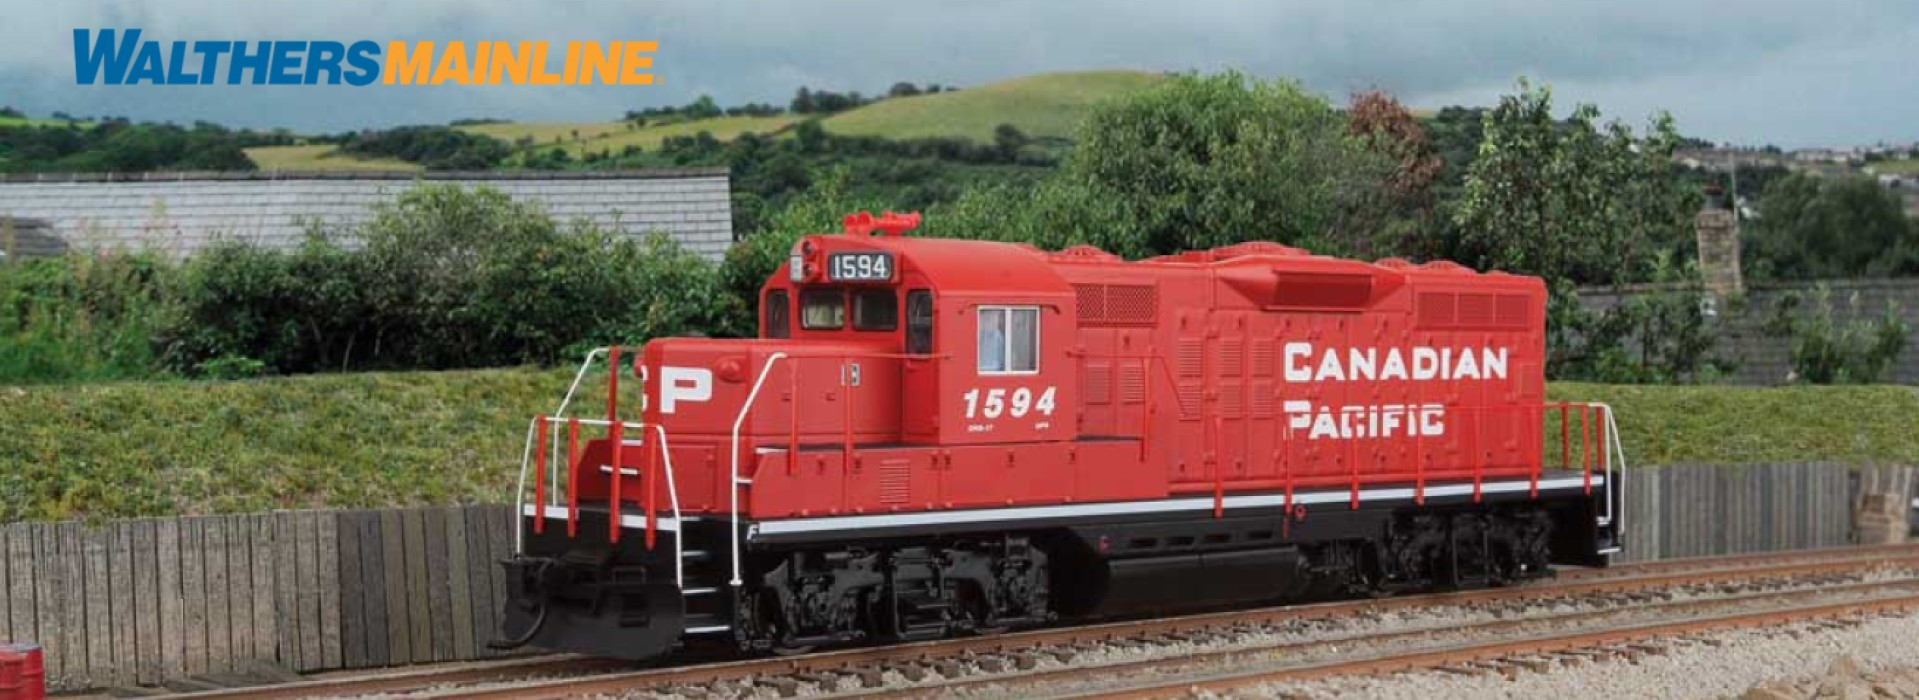 WALTHERS Mainline GP9 Canadian Pacific